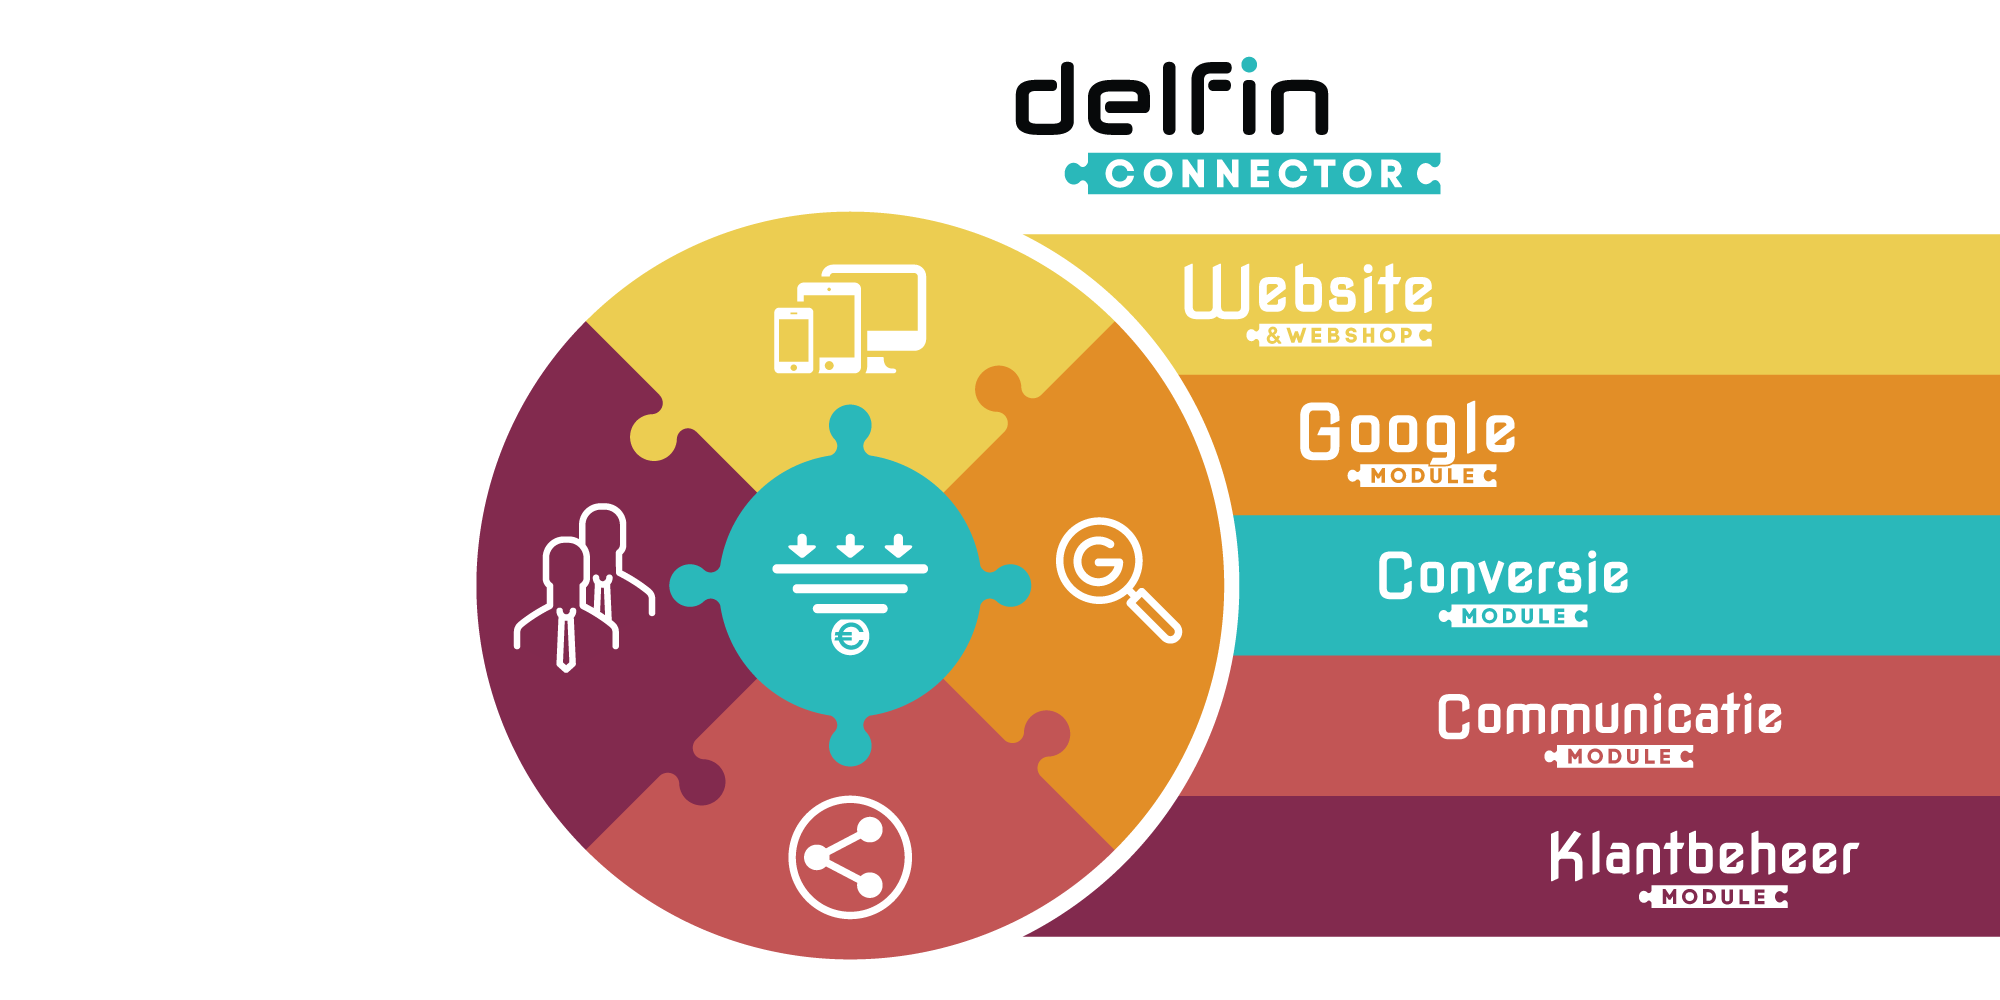 Marketing automation software Netherlands - delfin-connector